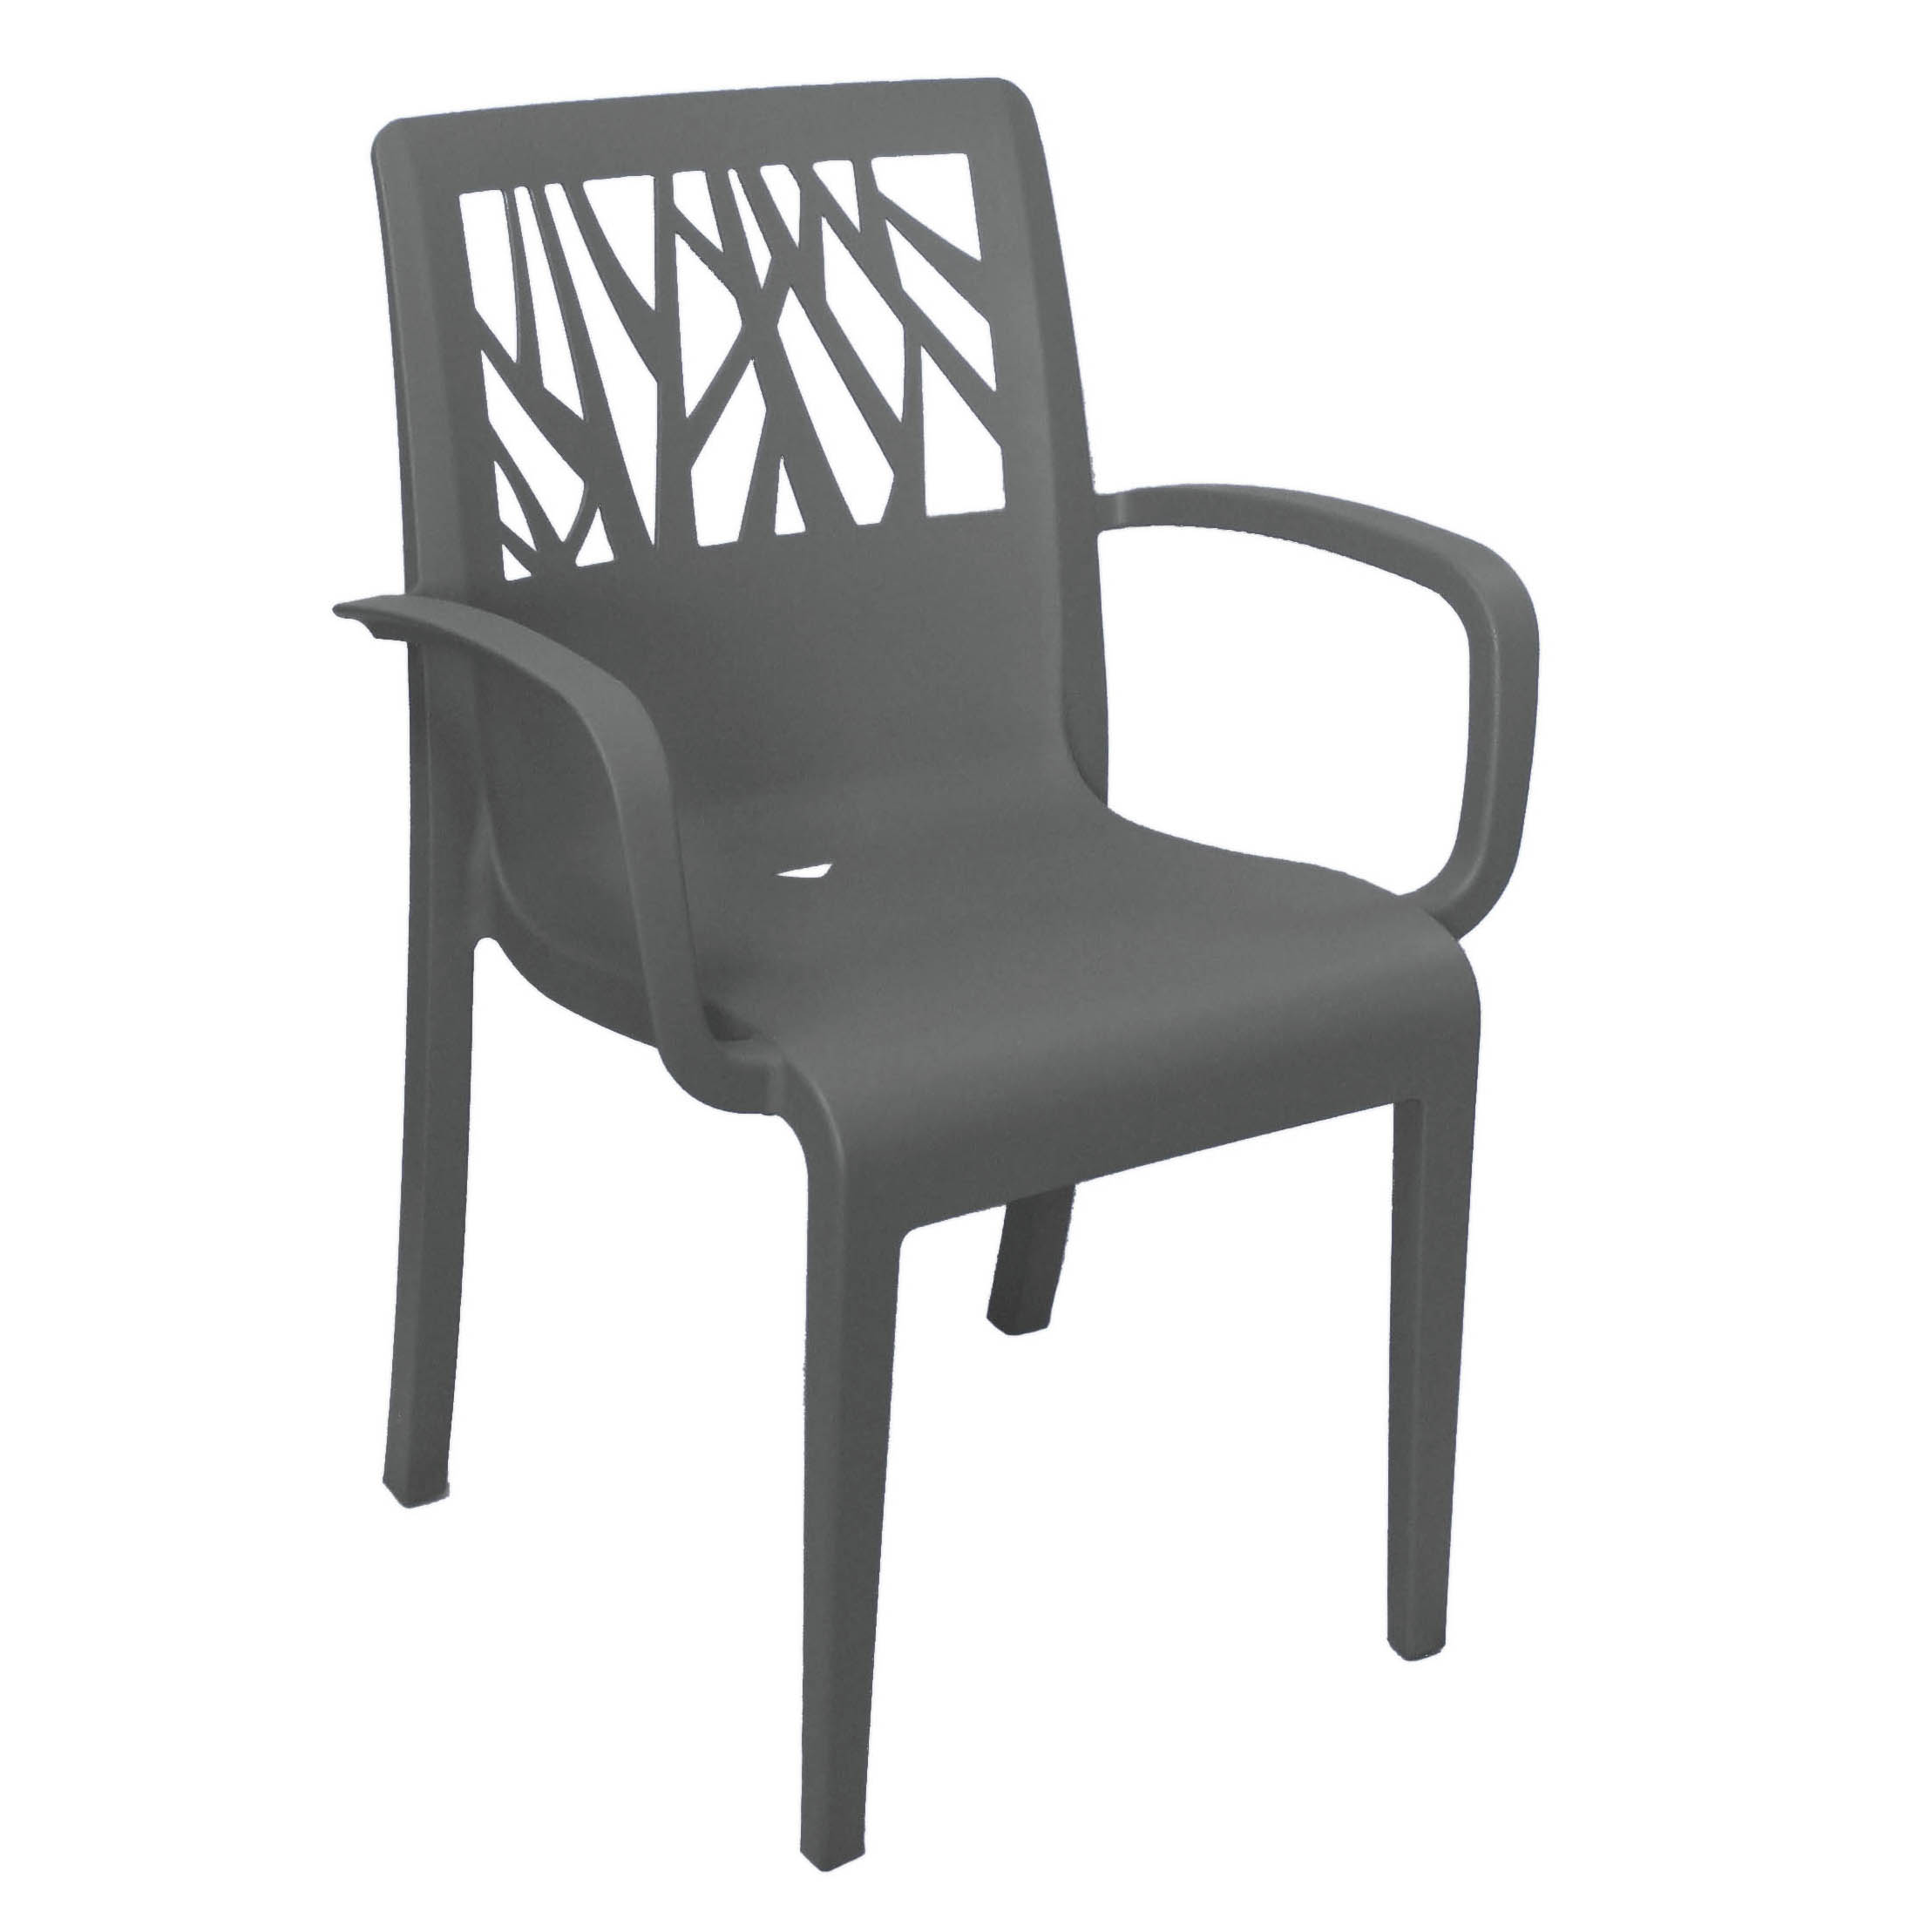 Grosfillex US203002 chair, armchair, stacking, outdoor